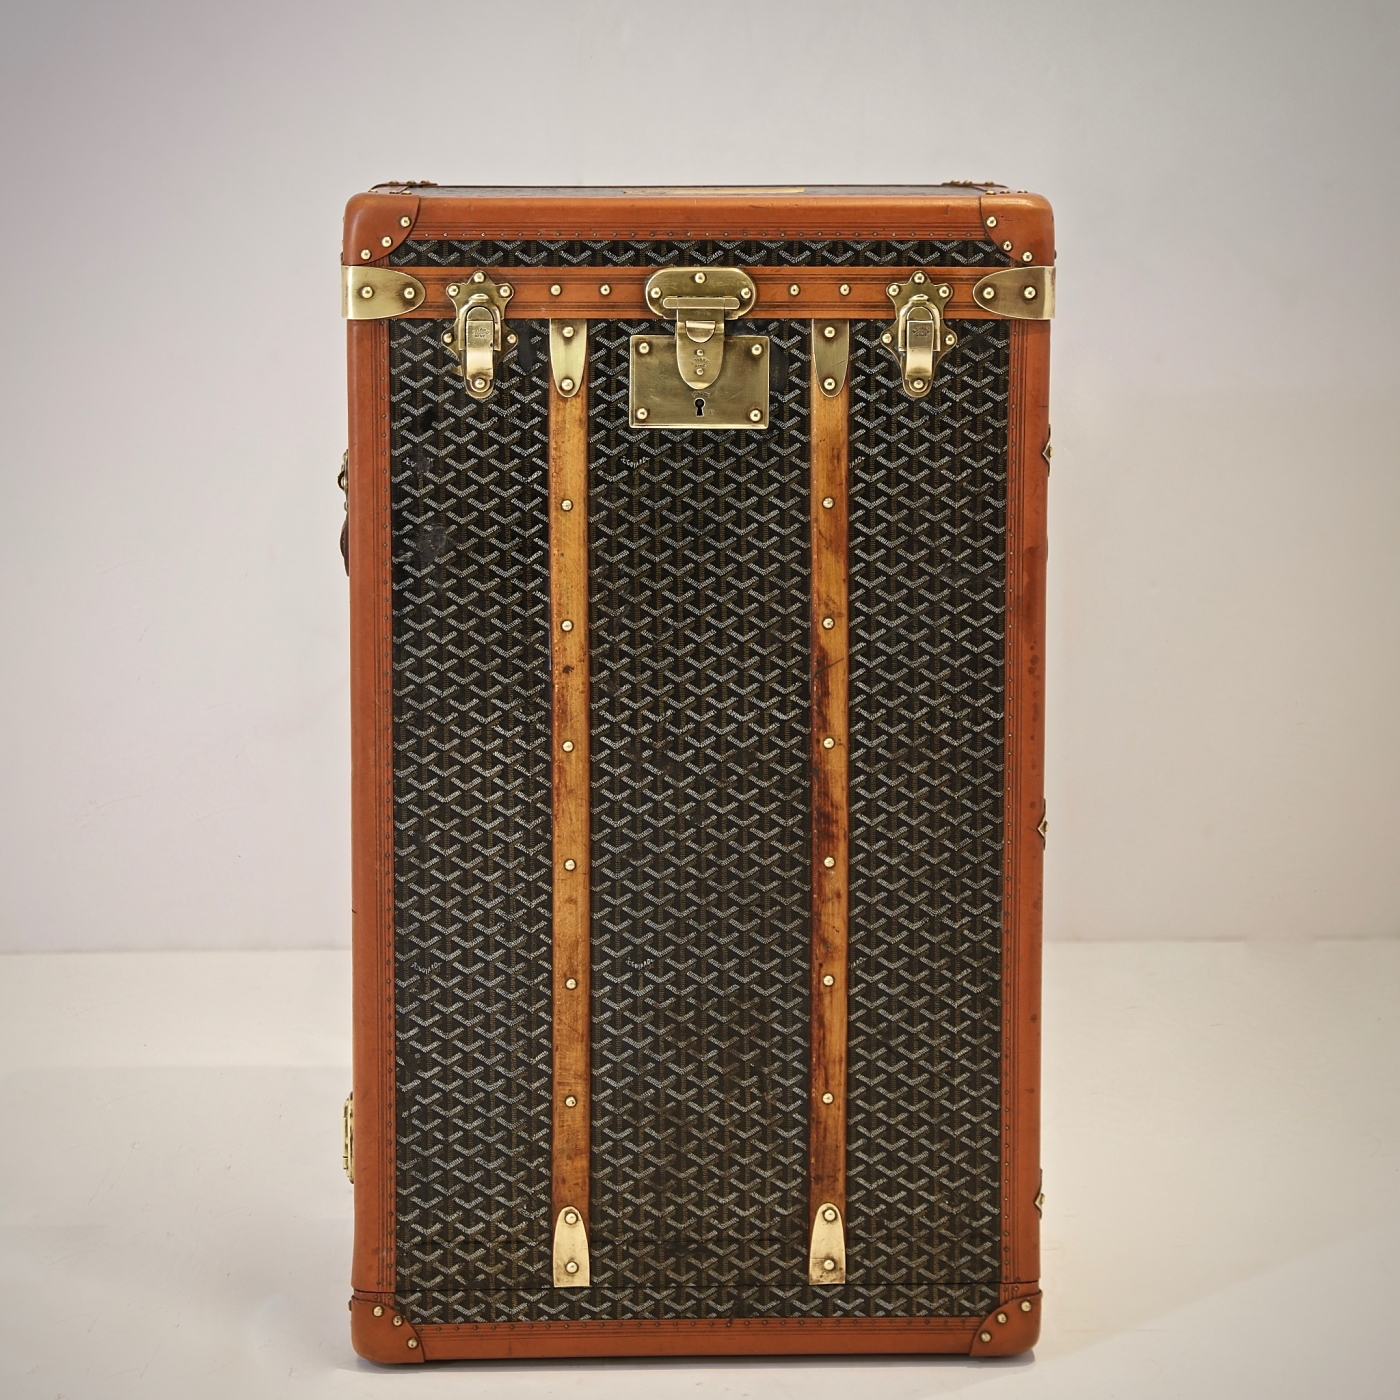 eled-trunk-goyard-thumbnail-product-5705